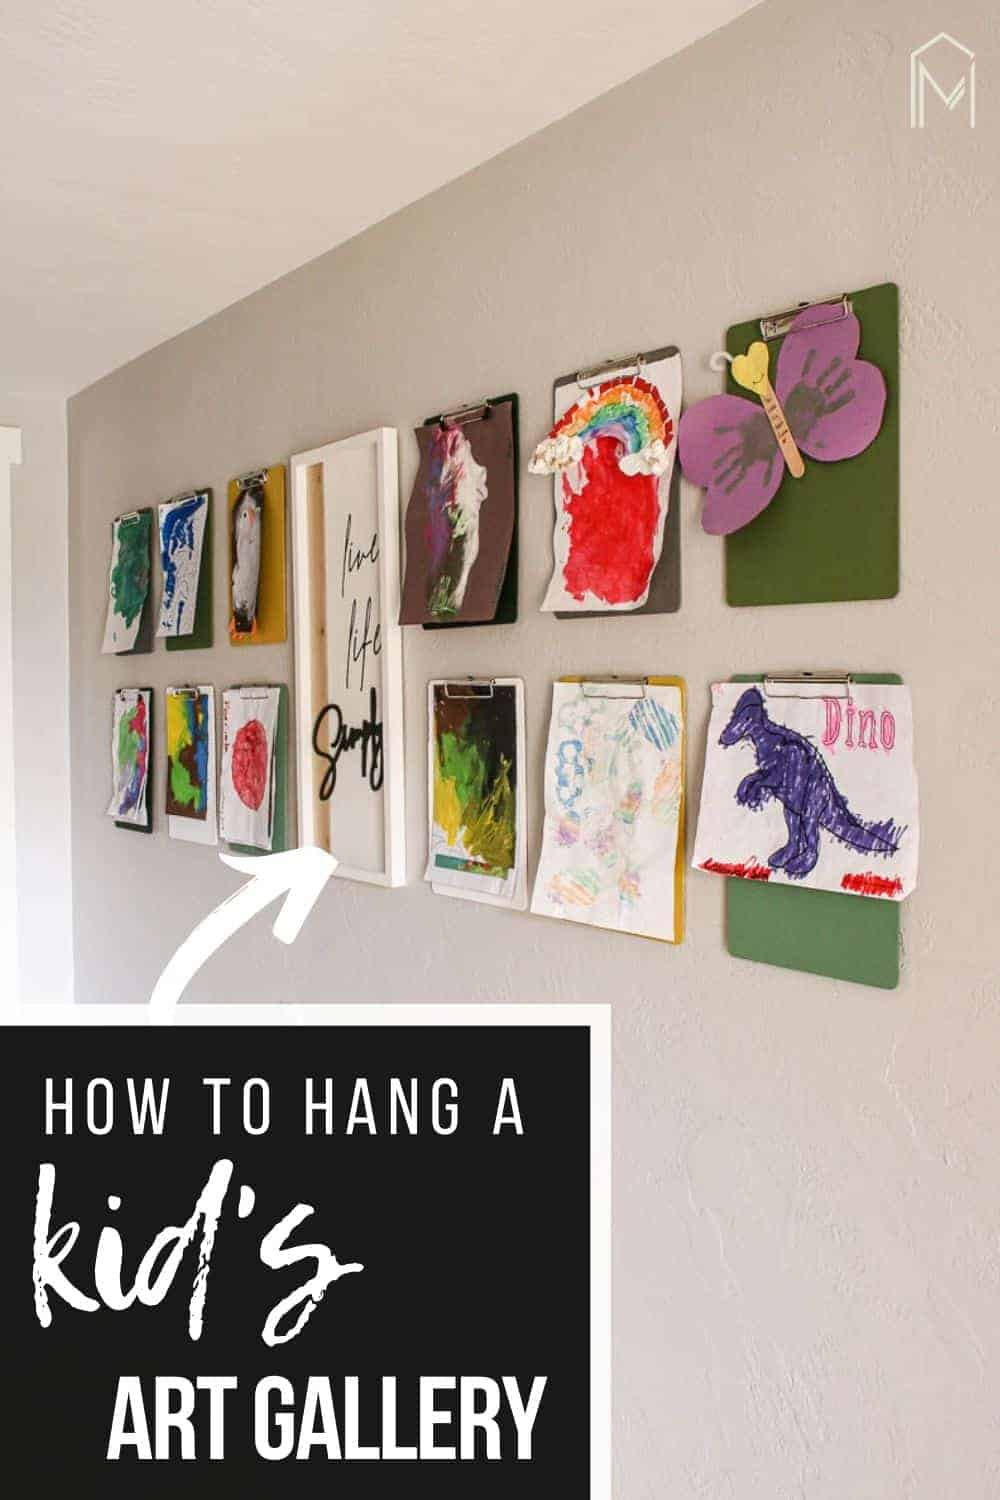 shows 12 clipboards with kid's paintings hanging from them on a gray wall with a live life simply frame hanging in between them with overlay text that says how to hang a kid's art gallery